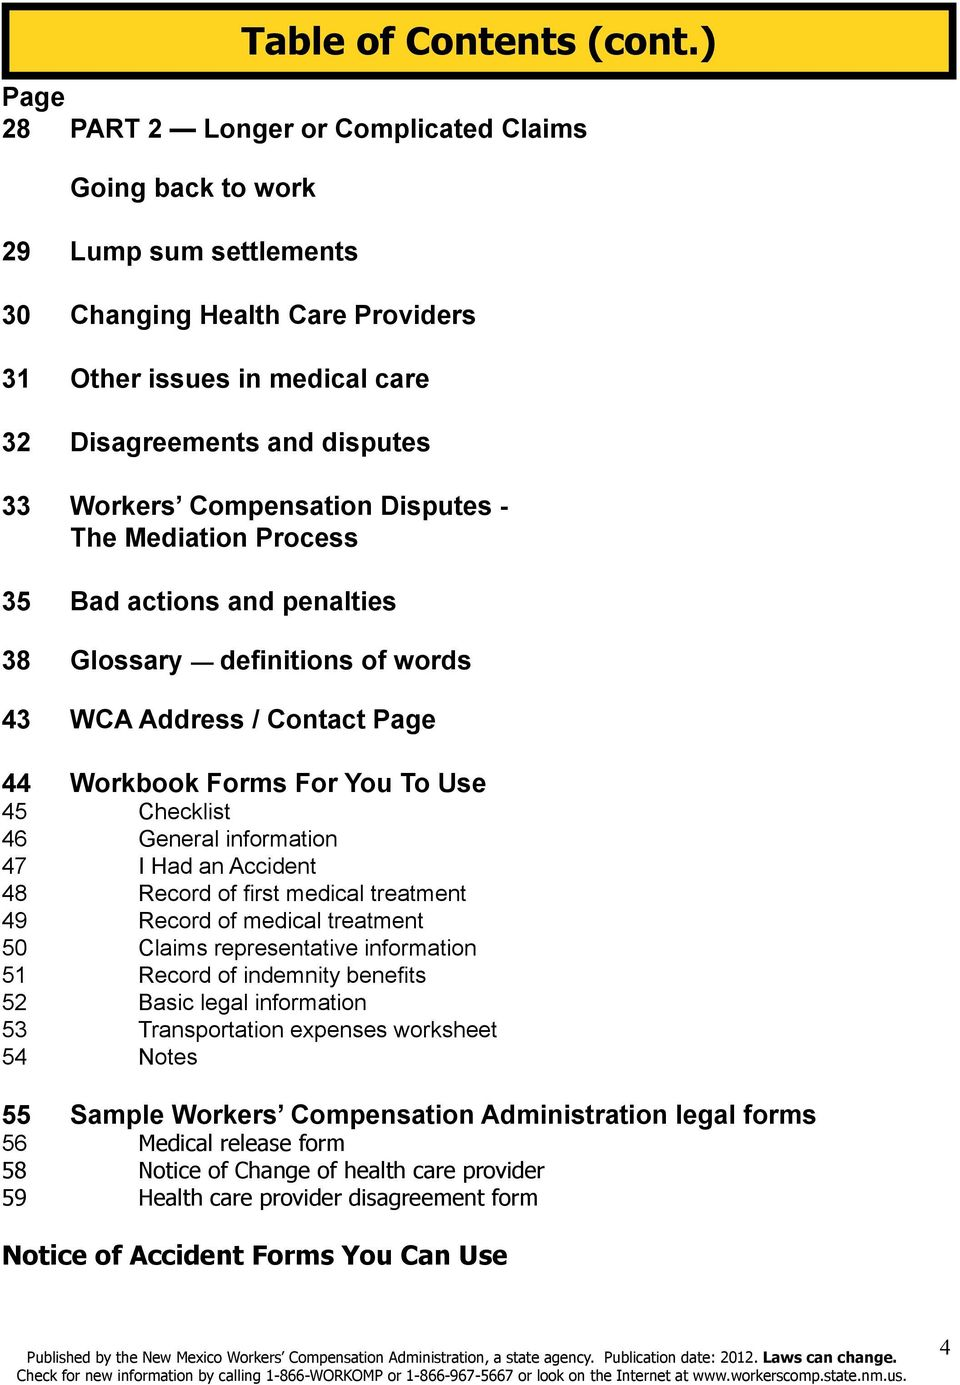 ) 44 Workbook Forms For You To Use 45 Checklist 46 General information 47 I Had an Accident 48 Record of first medical treatment 49 Record of medical treatment 50 Claims representative information 51